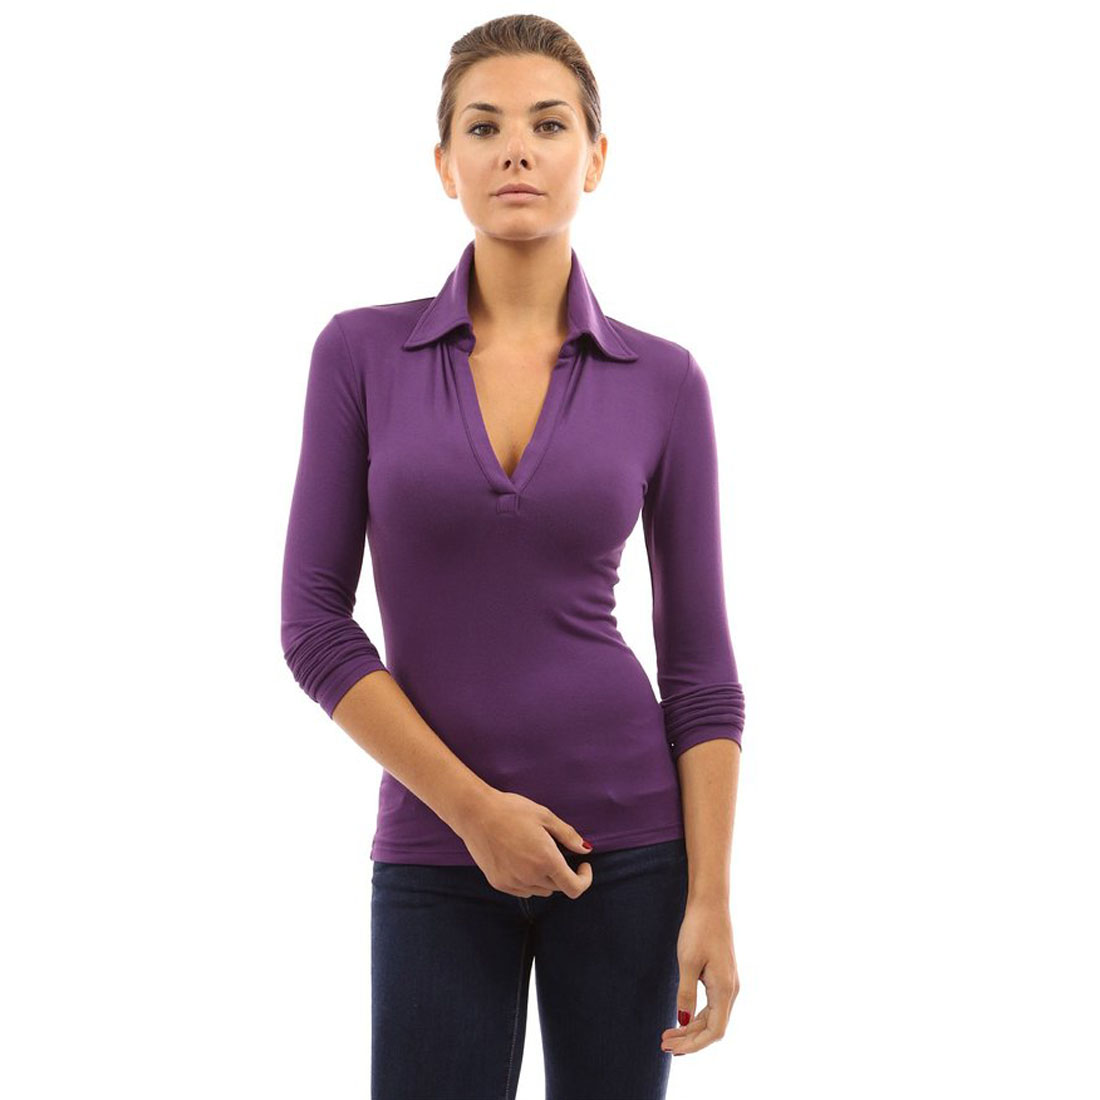 66f58652da3861 Ladies Fitted Shirt Uk « Alzheimer's Network of Oregon